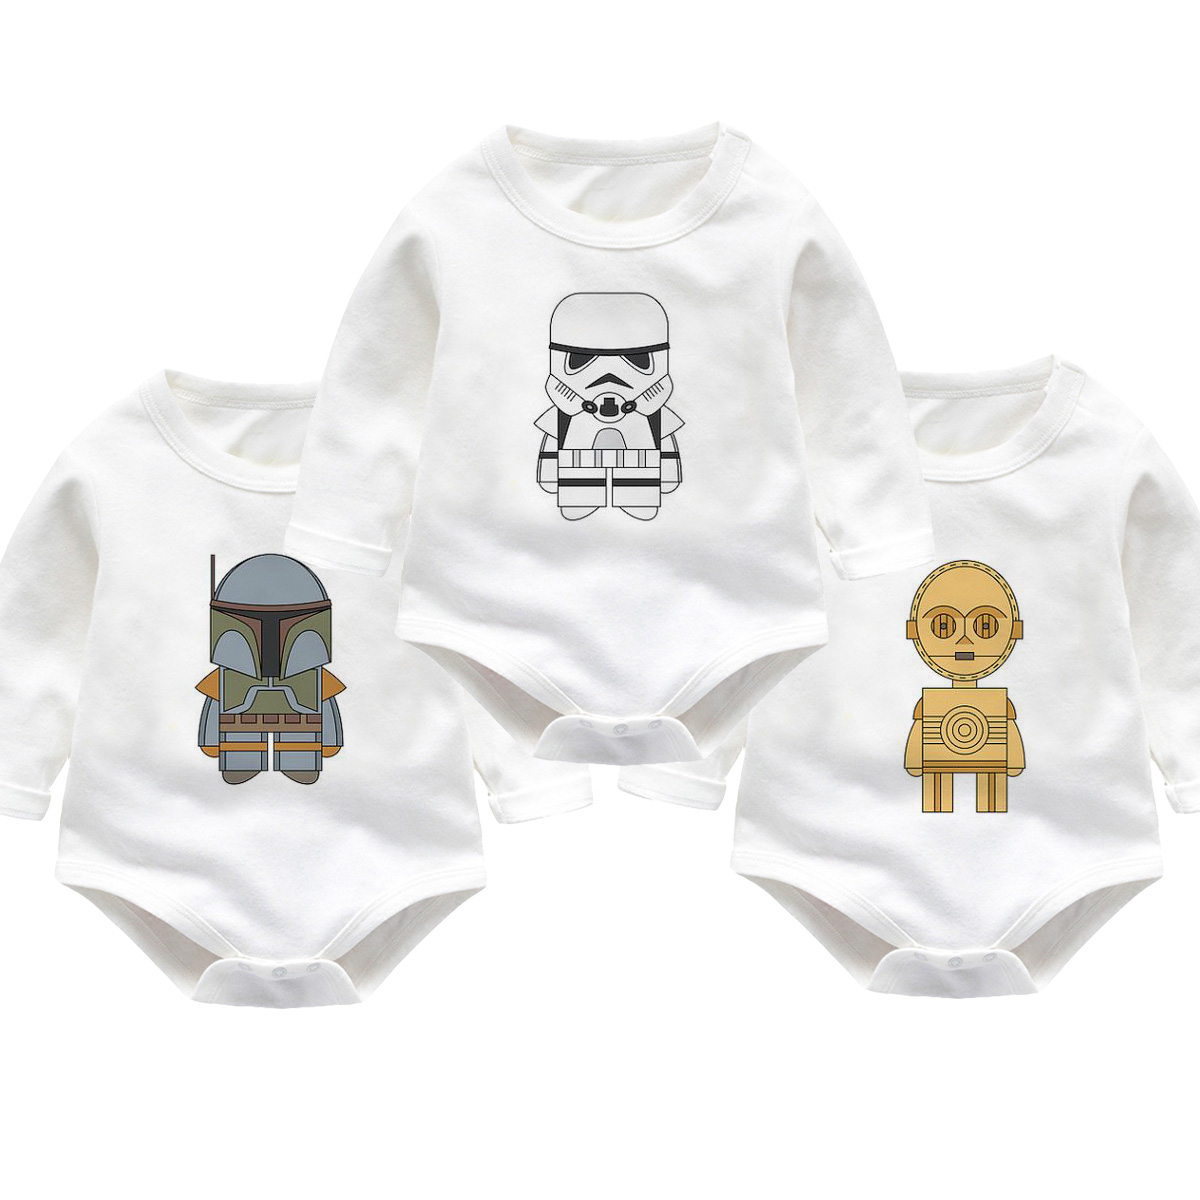 Cotton Newborn Baby Girls Boys Clothes Short Sleeve Bodysuits Print Star Wars Cute Jumpsuit Outfits Boys Baby Clothes